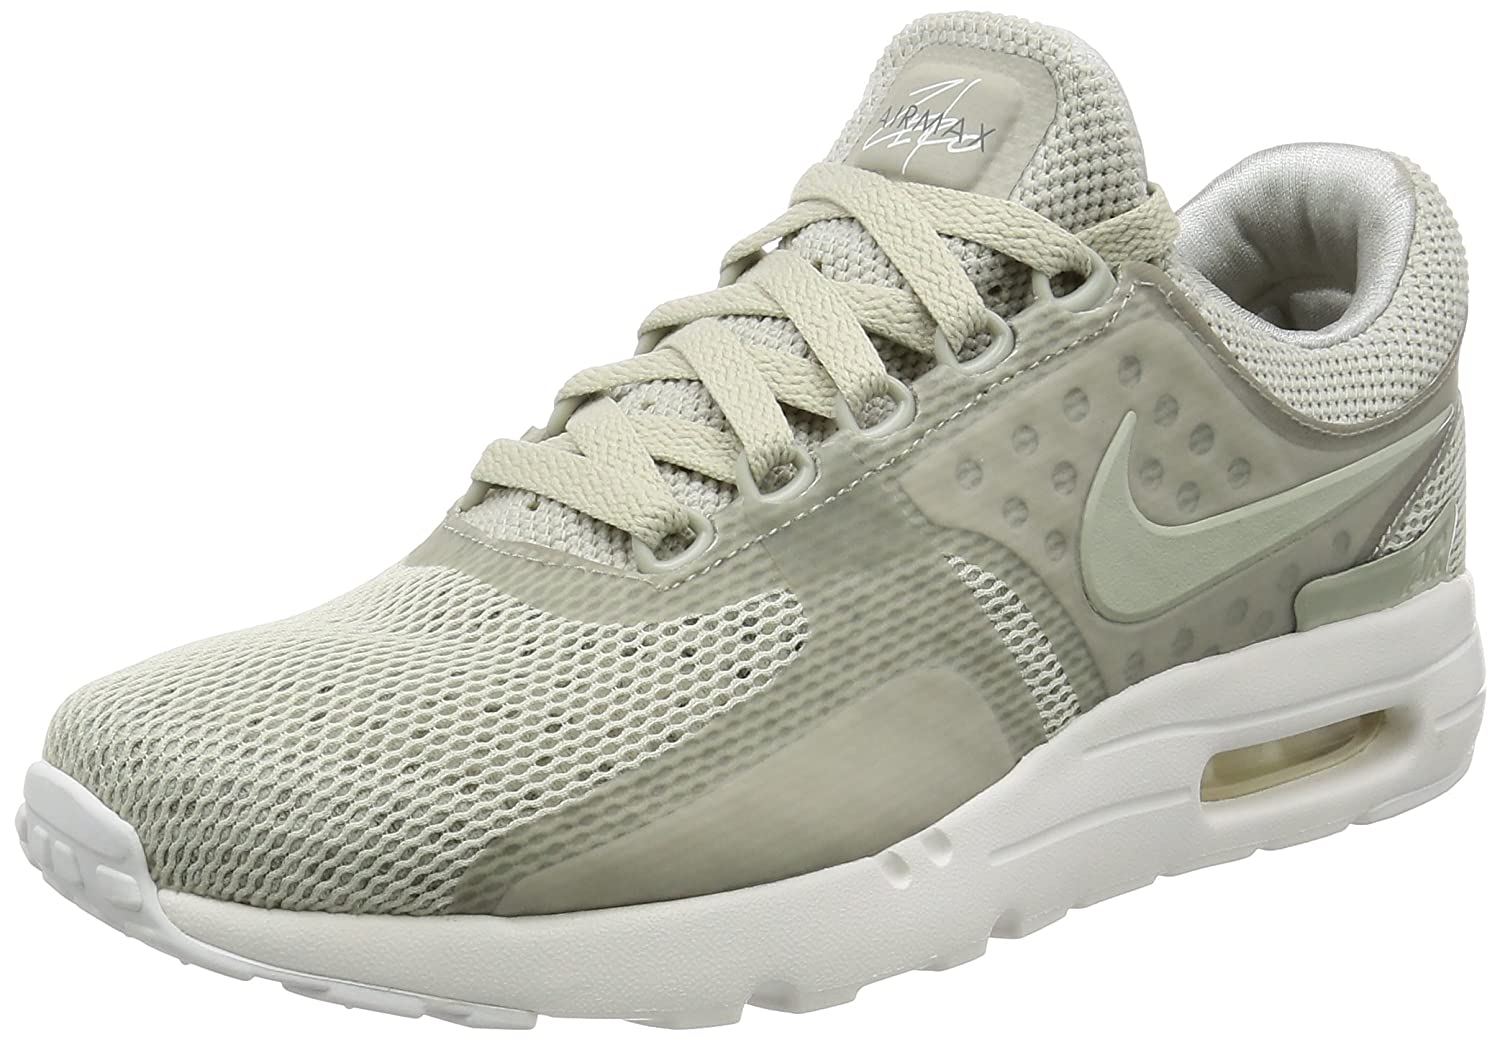 NIKE Air Max Zero Essential Mens Running Shoes B06X9BSDQY 9 D(M) US|Pale Grey / Pale Grey-summit White